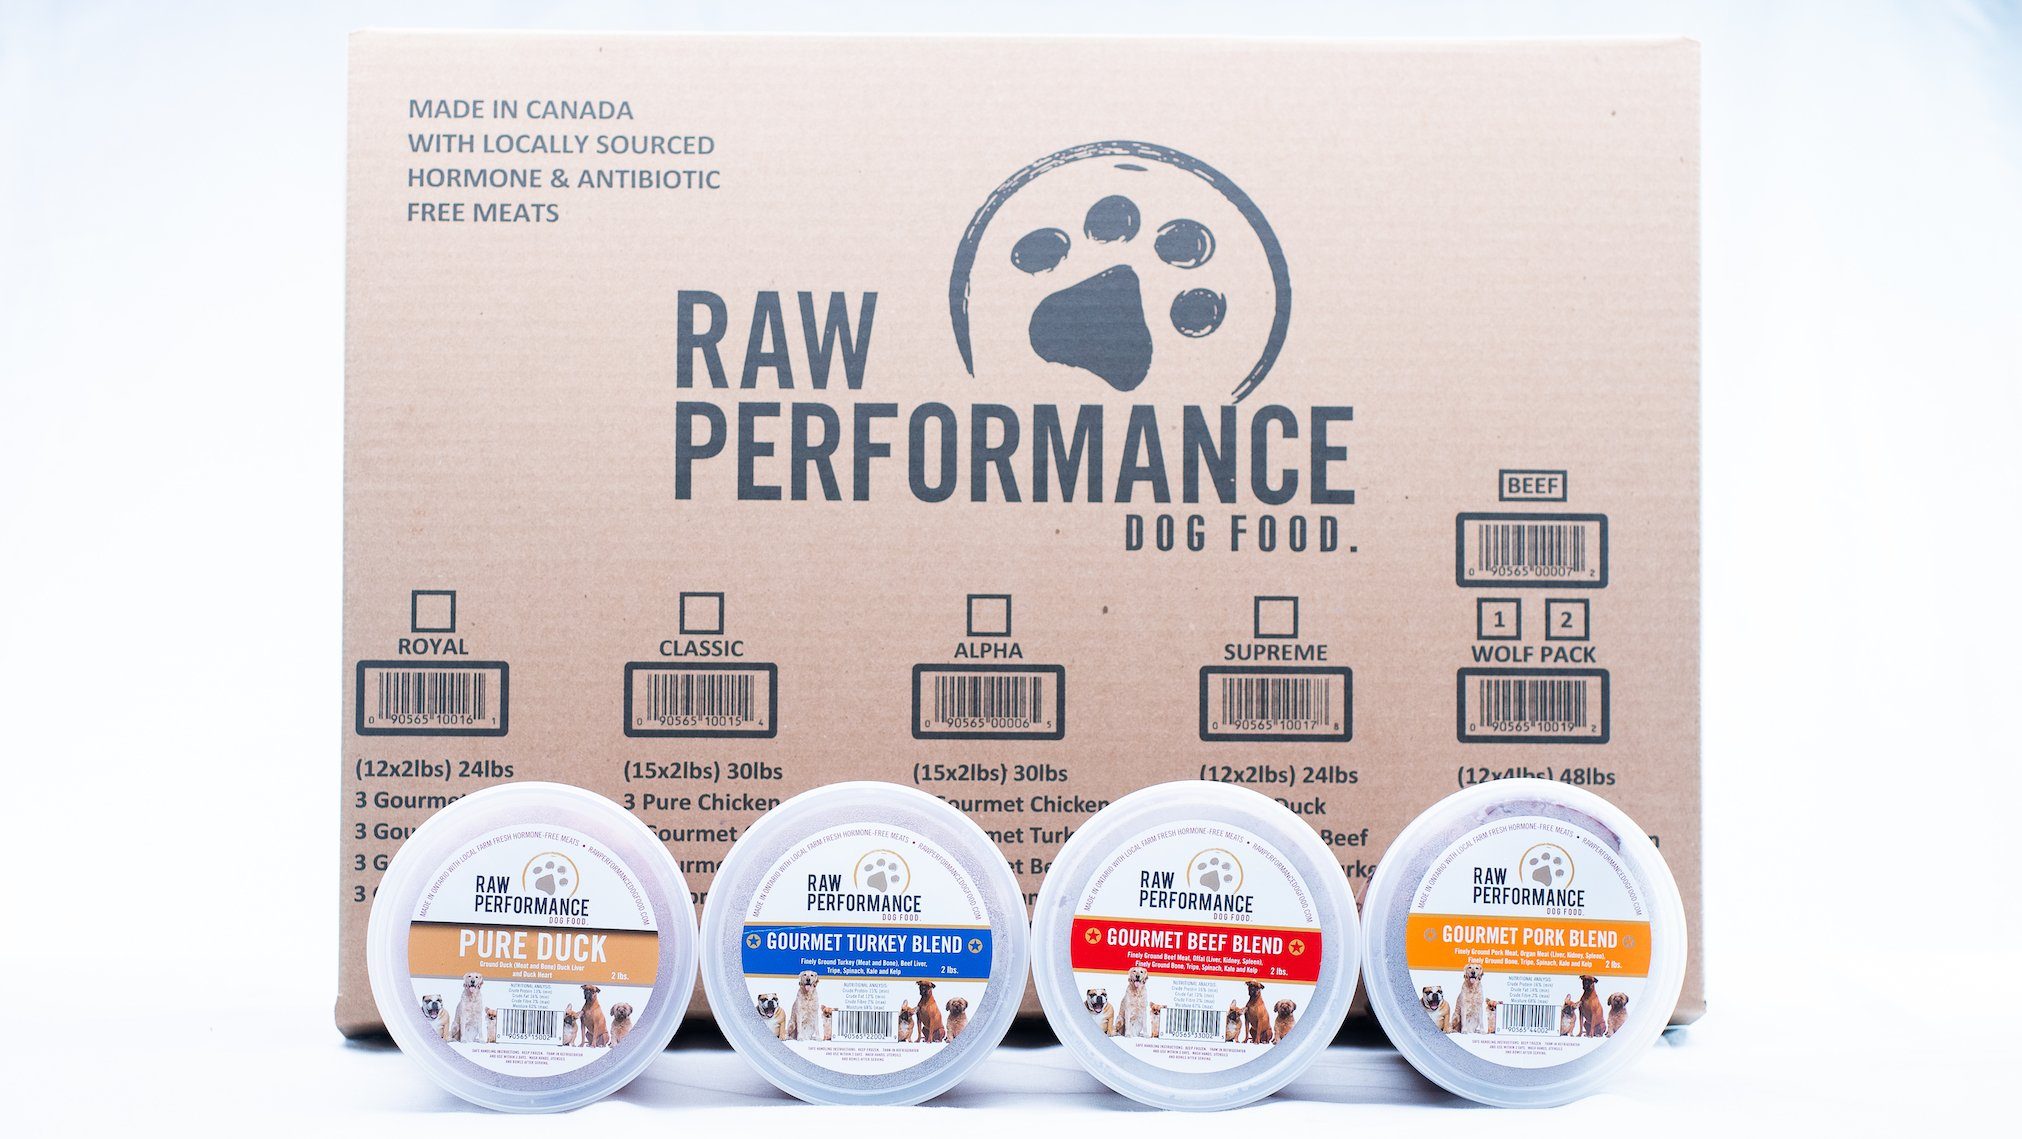 Raw Performance Variety Cases Supreme, 24-lbs (12 x 2-lbs) Dog Food